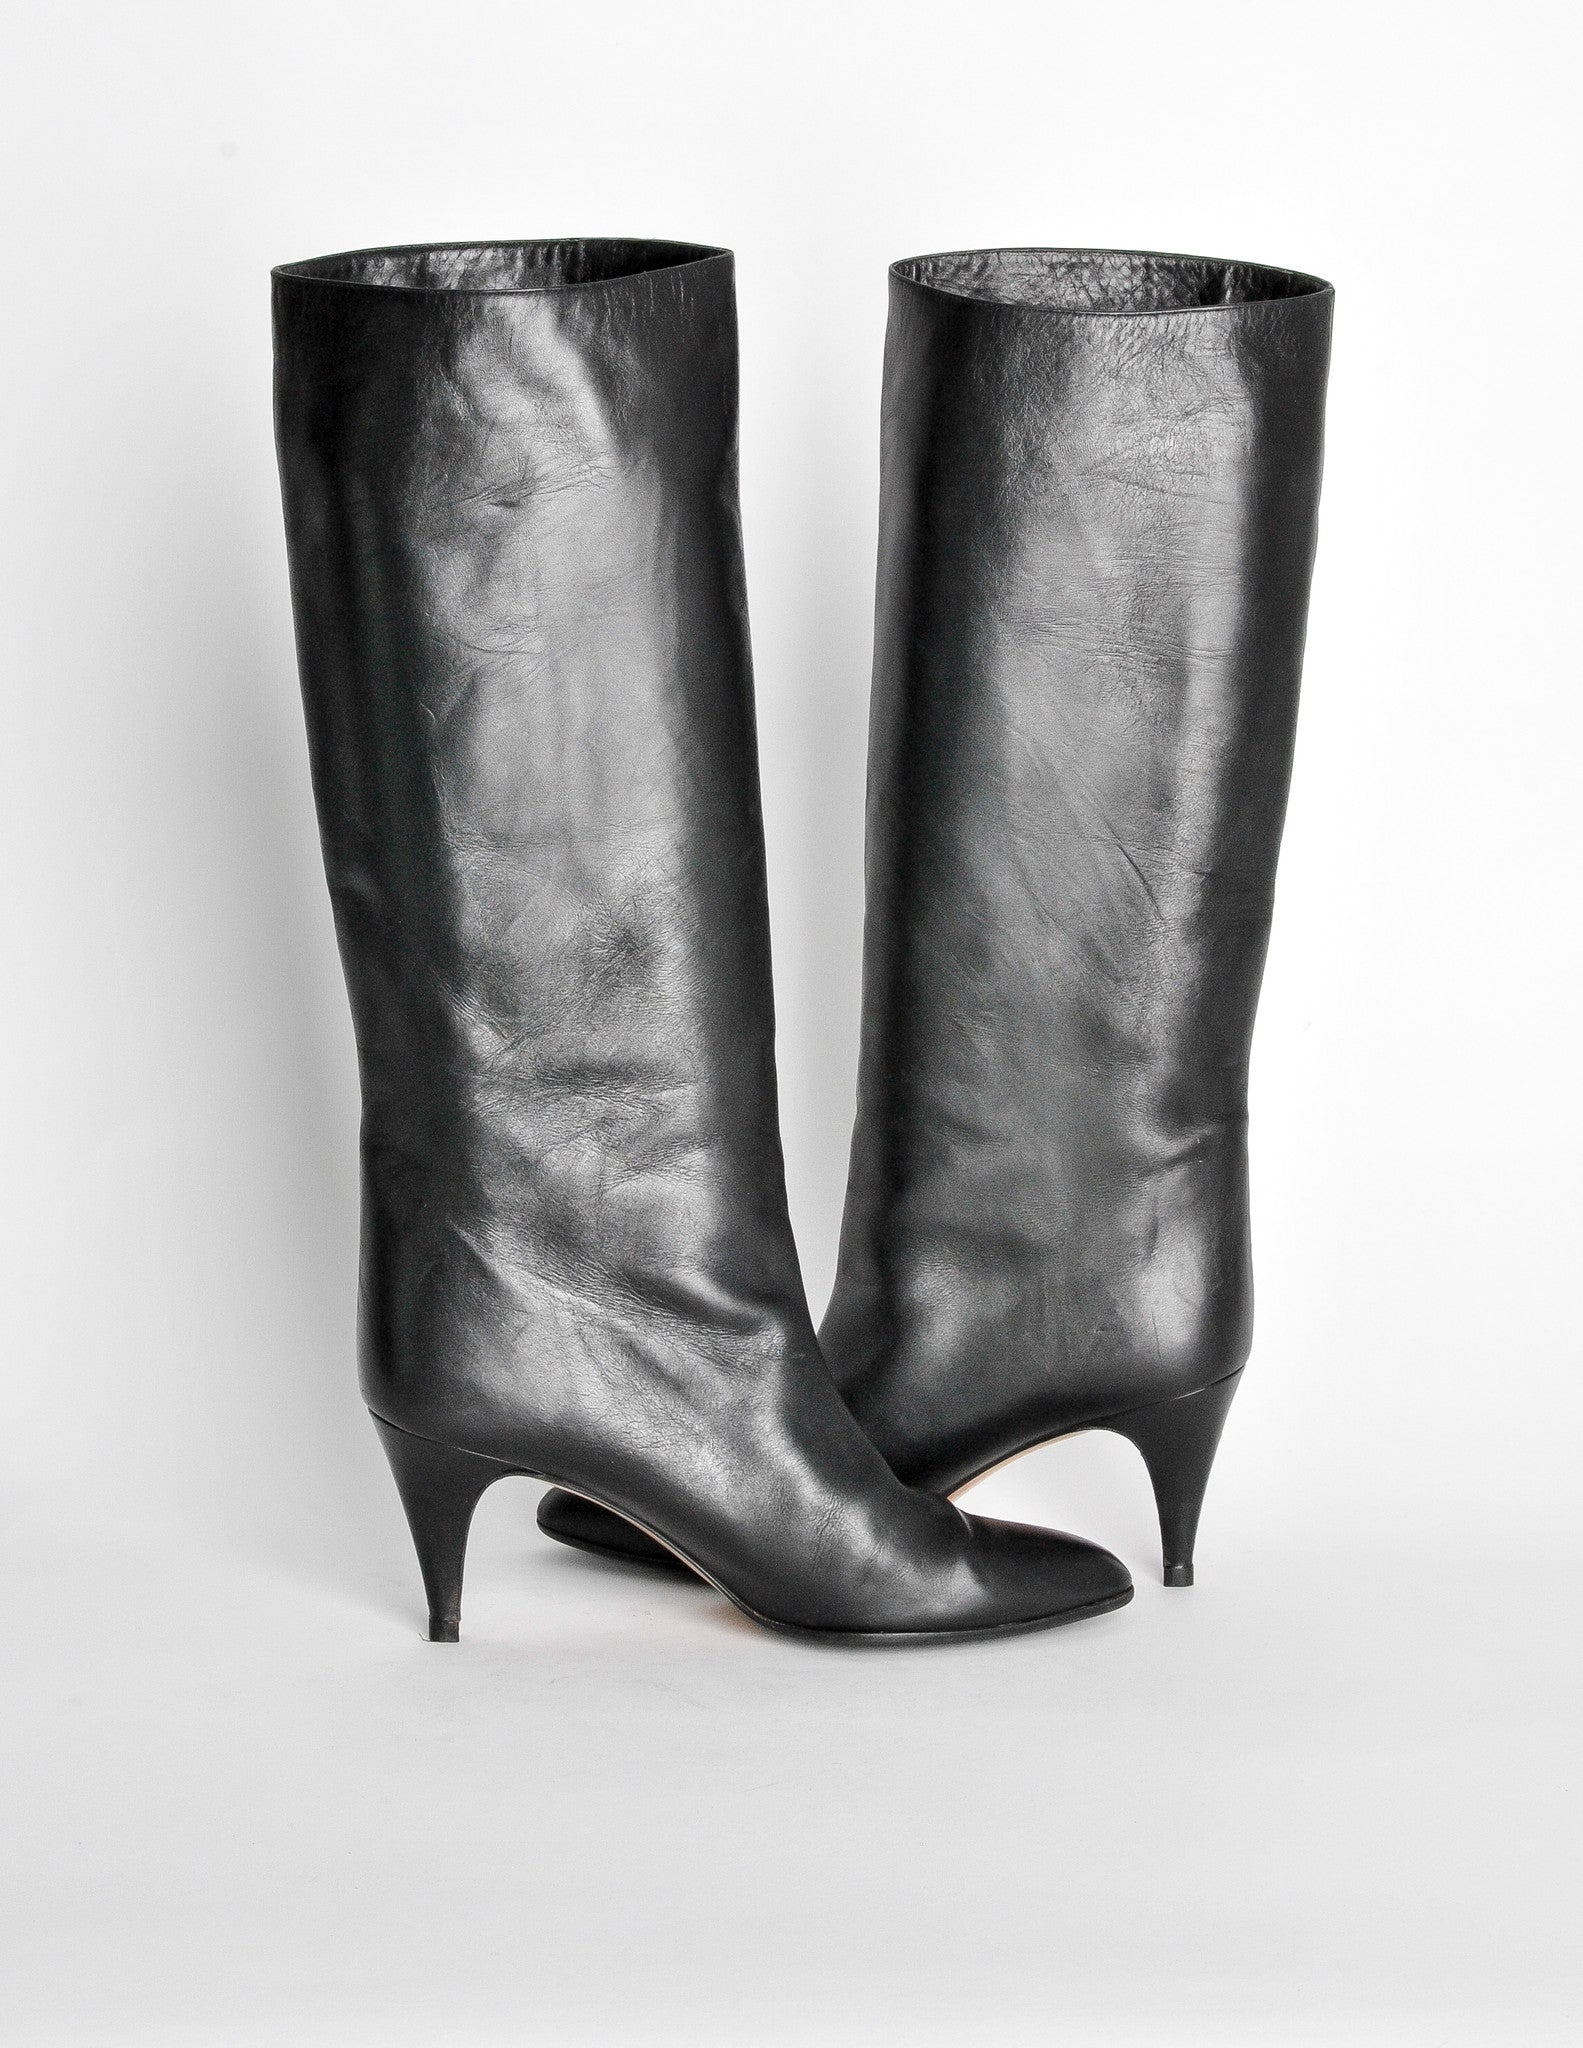 761d4480386 Garolini Vintage Black Leather Knee High Boots - Amarcord Vintage Fashion -  3